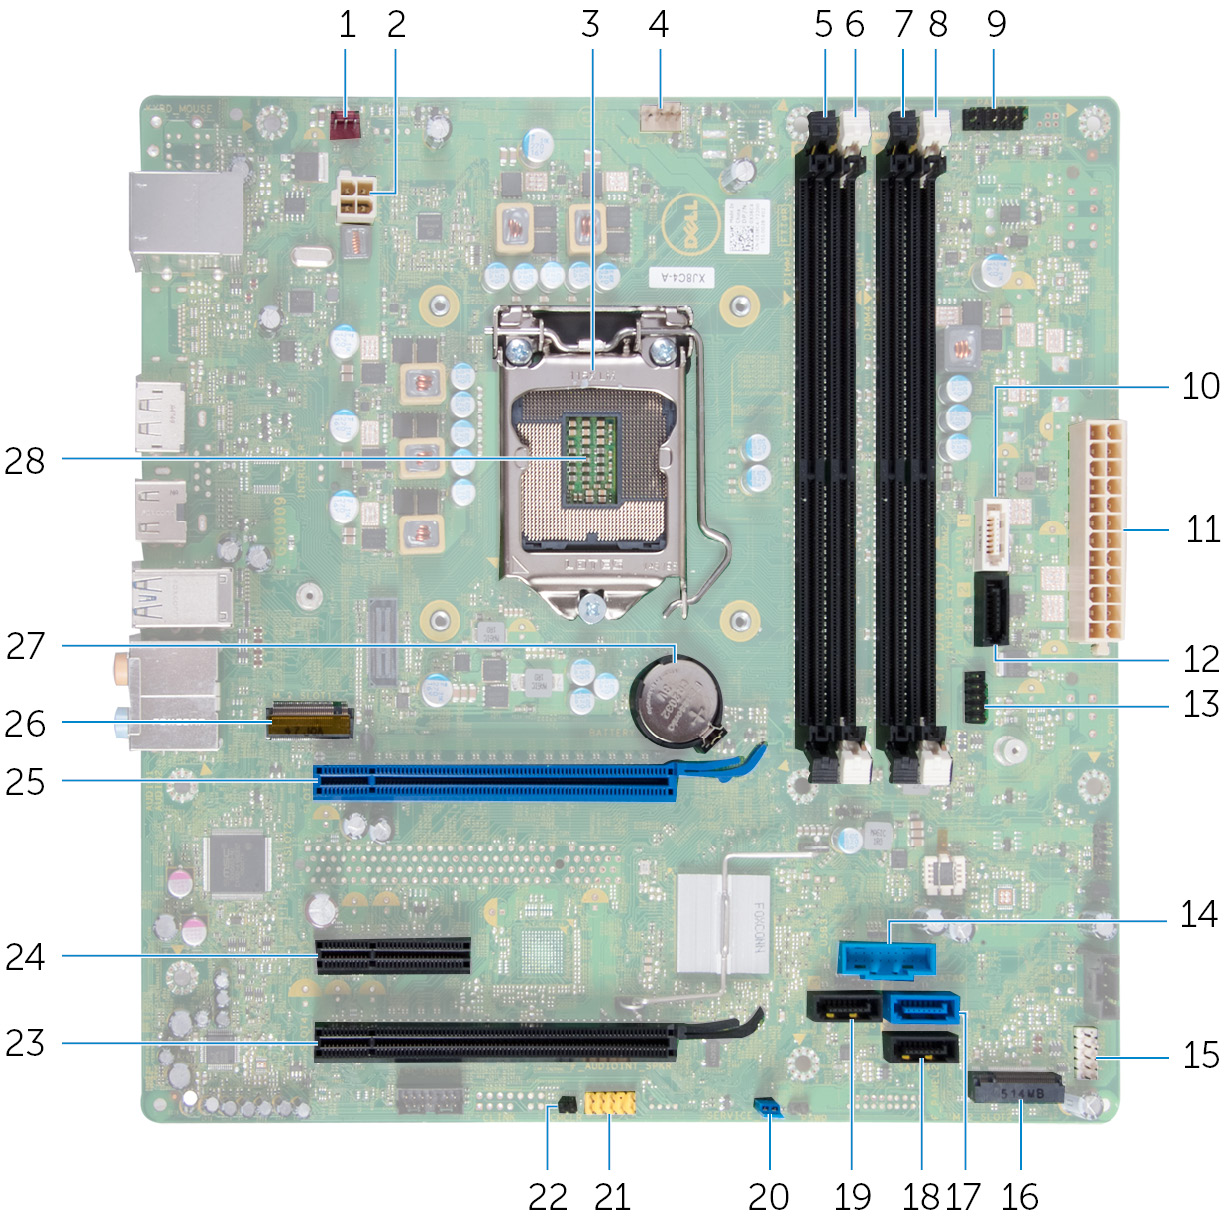 hight resolution of image system board components